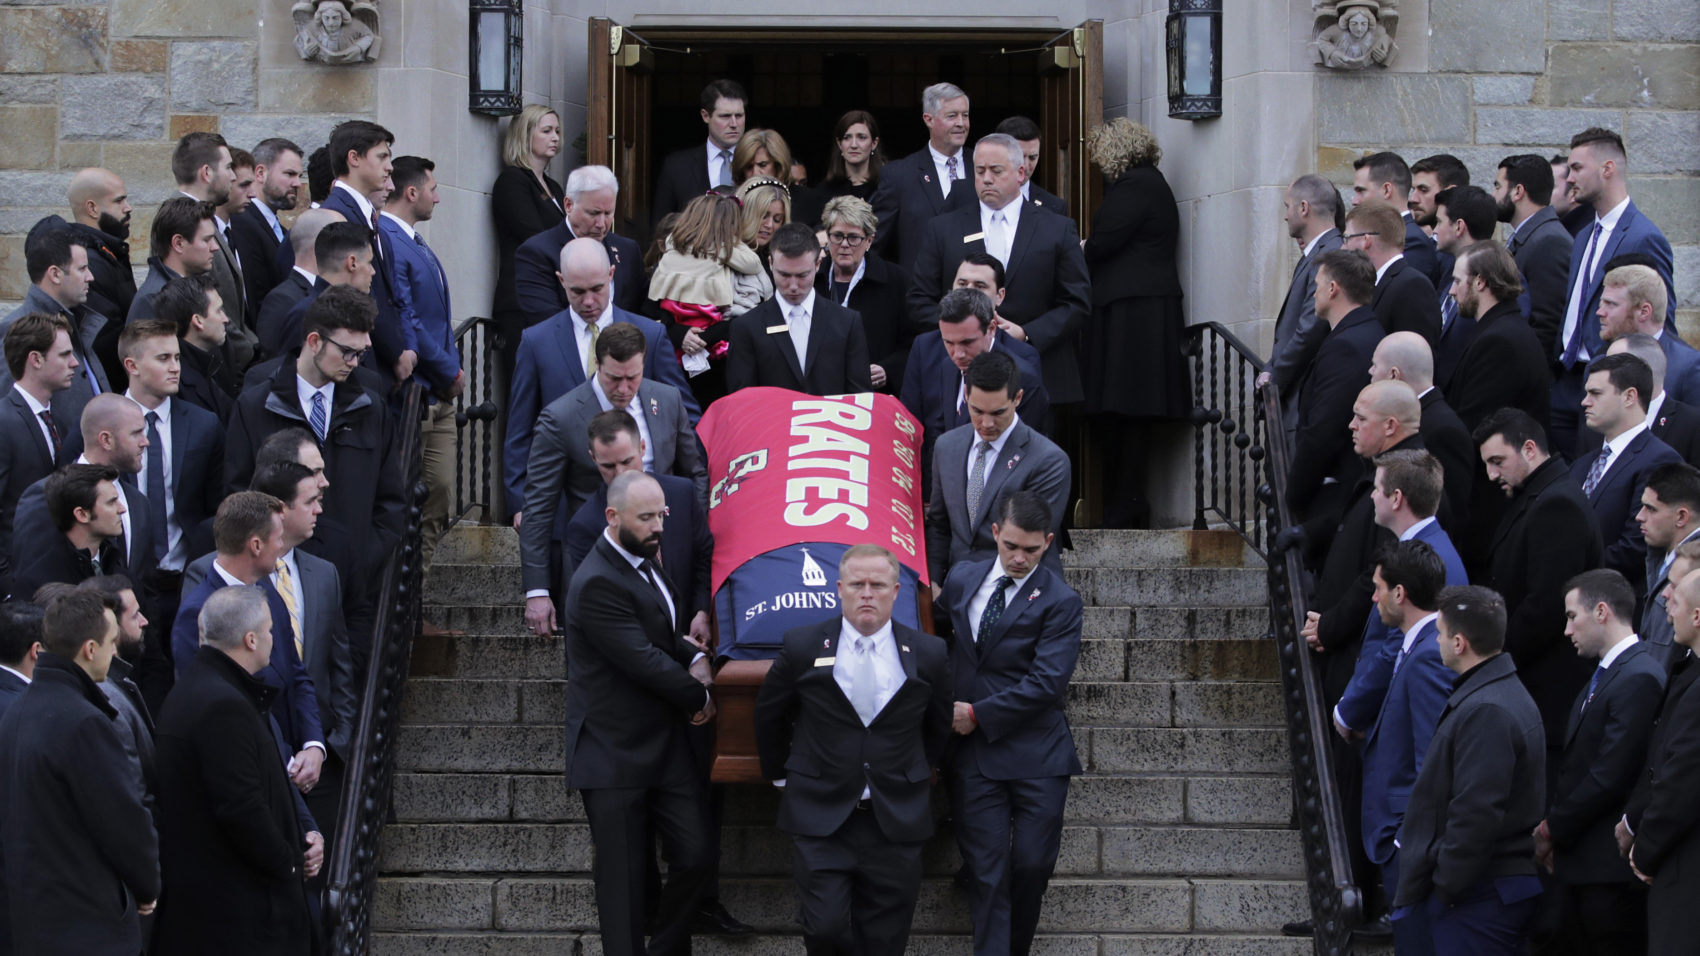 Boston College athletes, from past and present teams, watch as the casket is carried from the funeral of Pete Frates at St. Ignatius of Loyola Parish in Chestnut Hill. (Charles Krupa/AP)